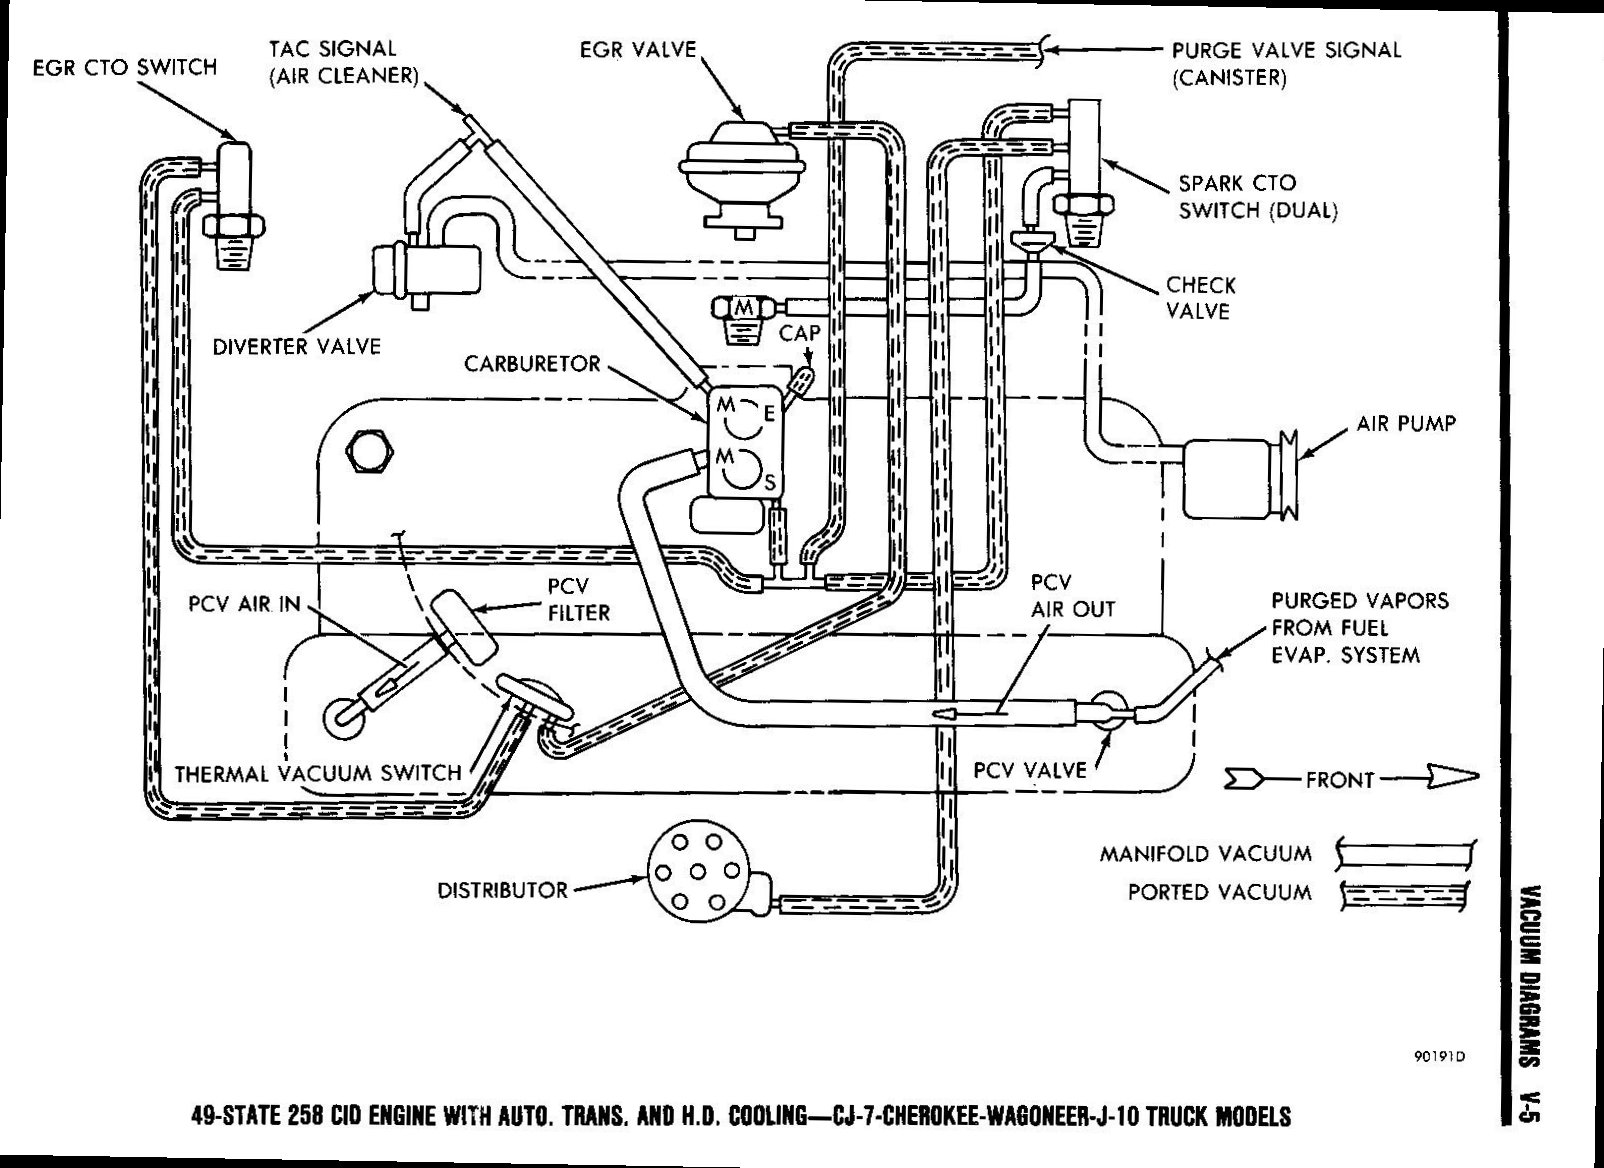 Engine Part Diagram additionally 22166223145261018 besides P 0900c152800851ae further Vacuum Lines Missing Parts Please Help 279563 also P 0900c152800851ae. on amc 304 engine exploded